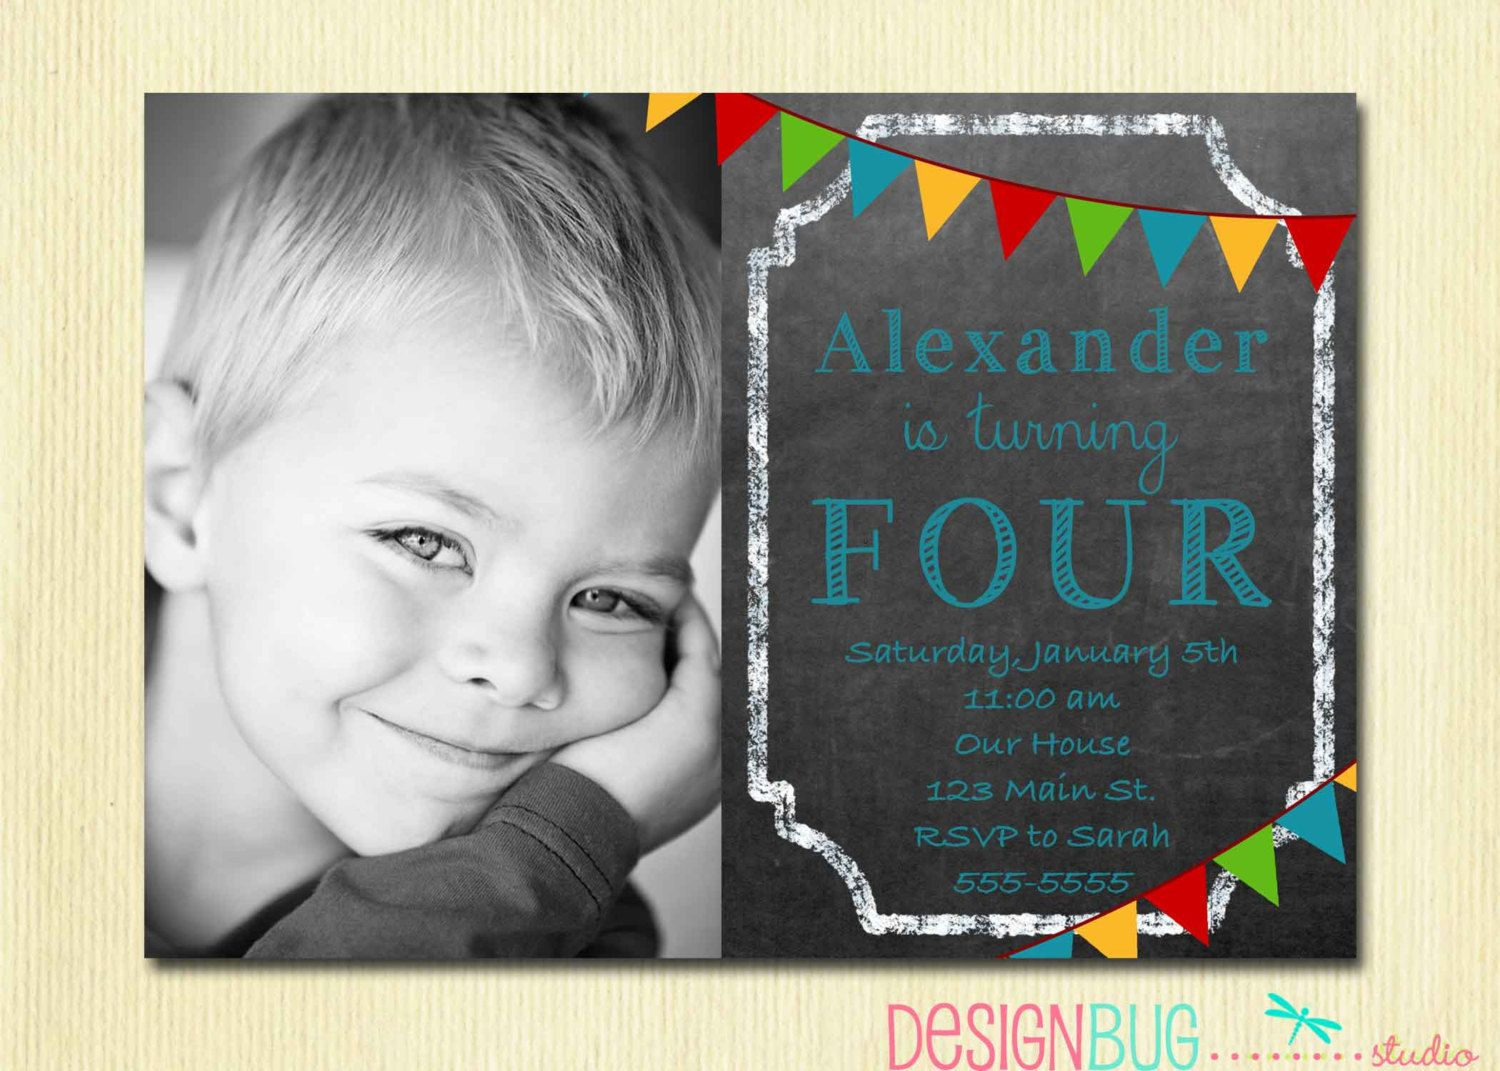 Boys Chalkboard Birthday Invitation 1 2 3 4 5 year old – 2 Year Old Birthday Invites